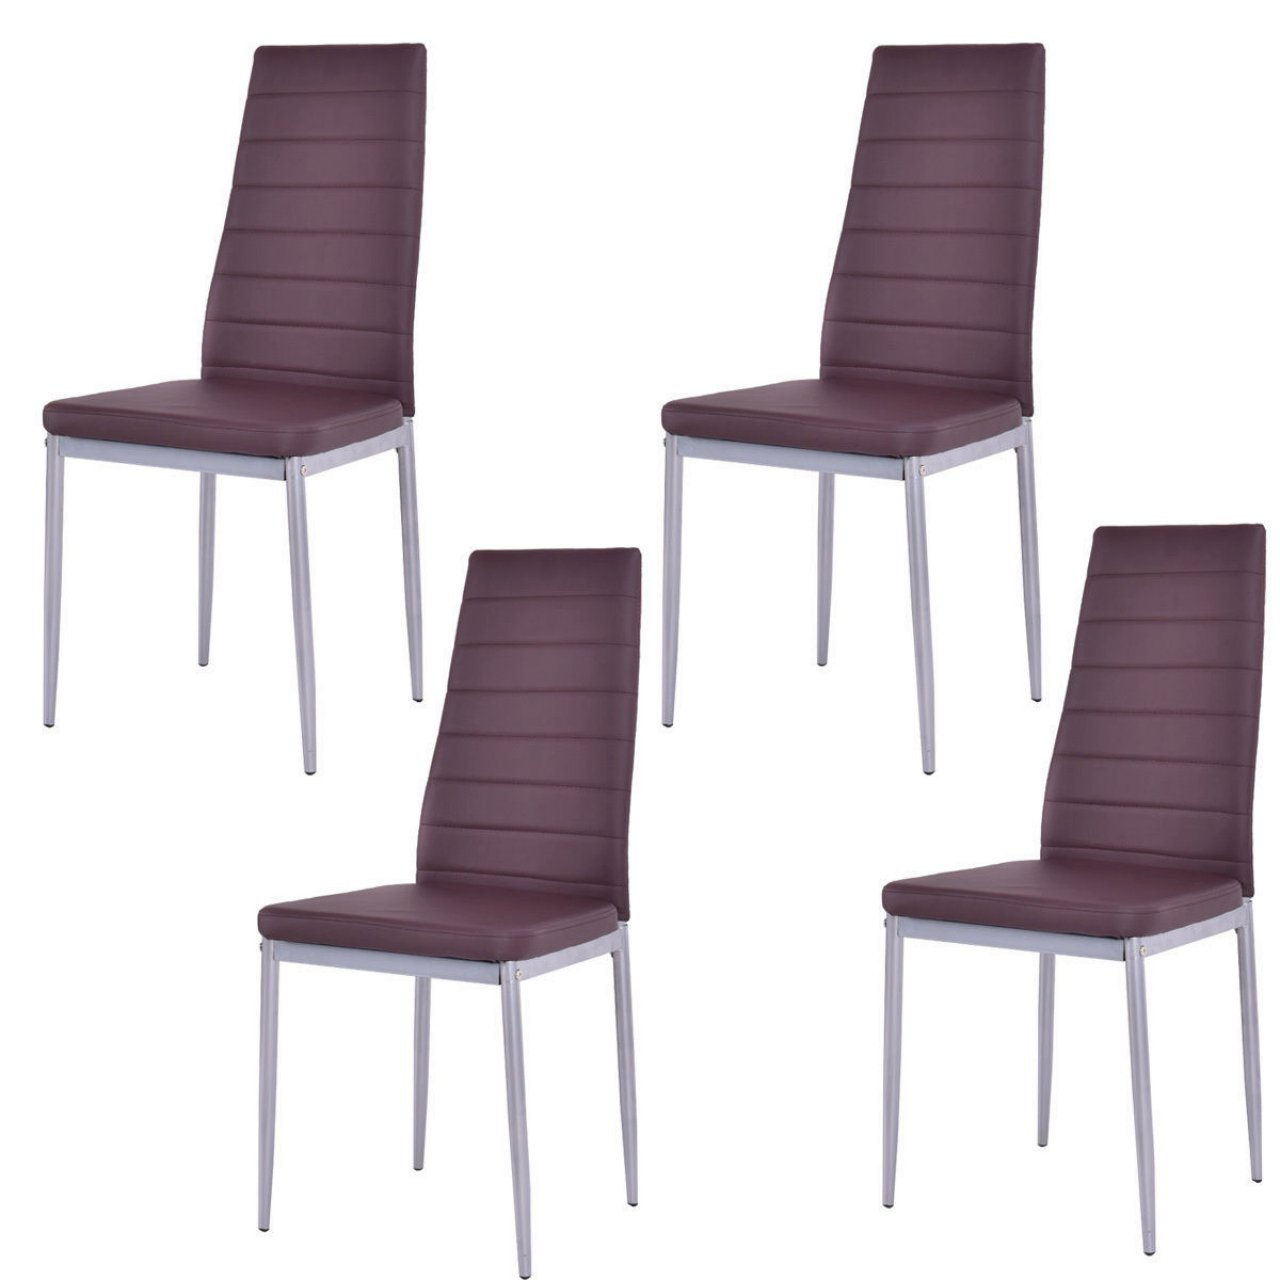 Set of 4 Elegant Dining Chairs Modern Design Comfortable Home Office Furniture/ Brown #1004